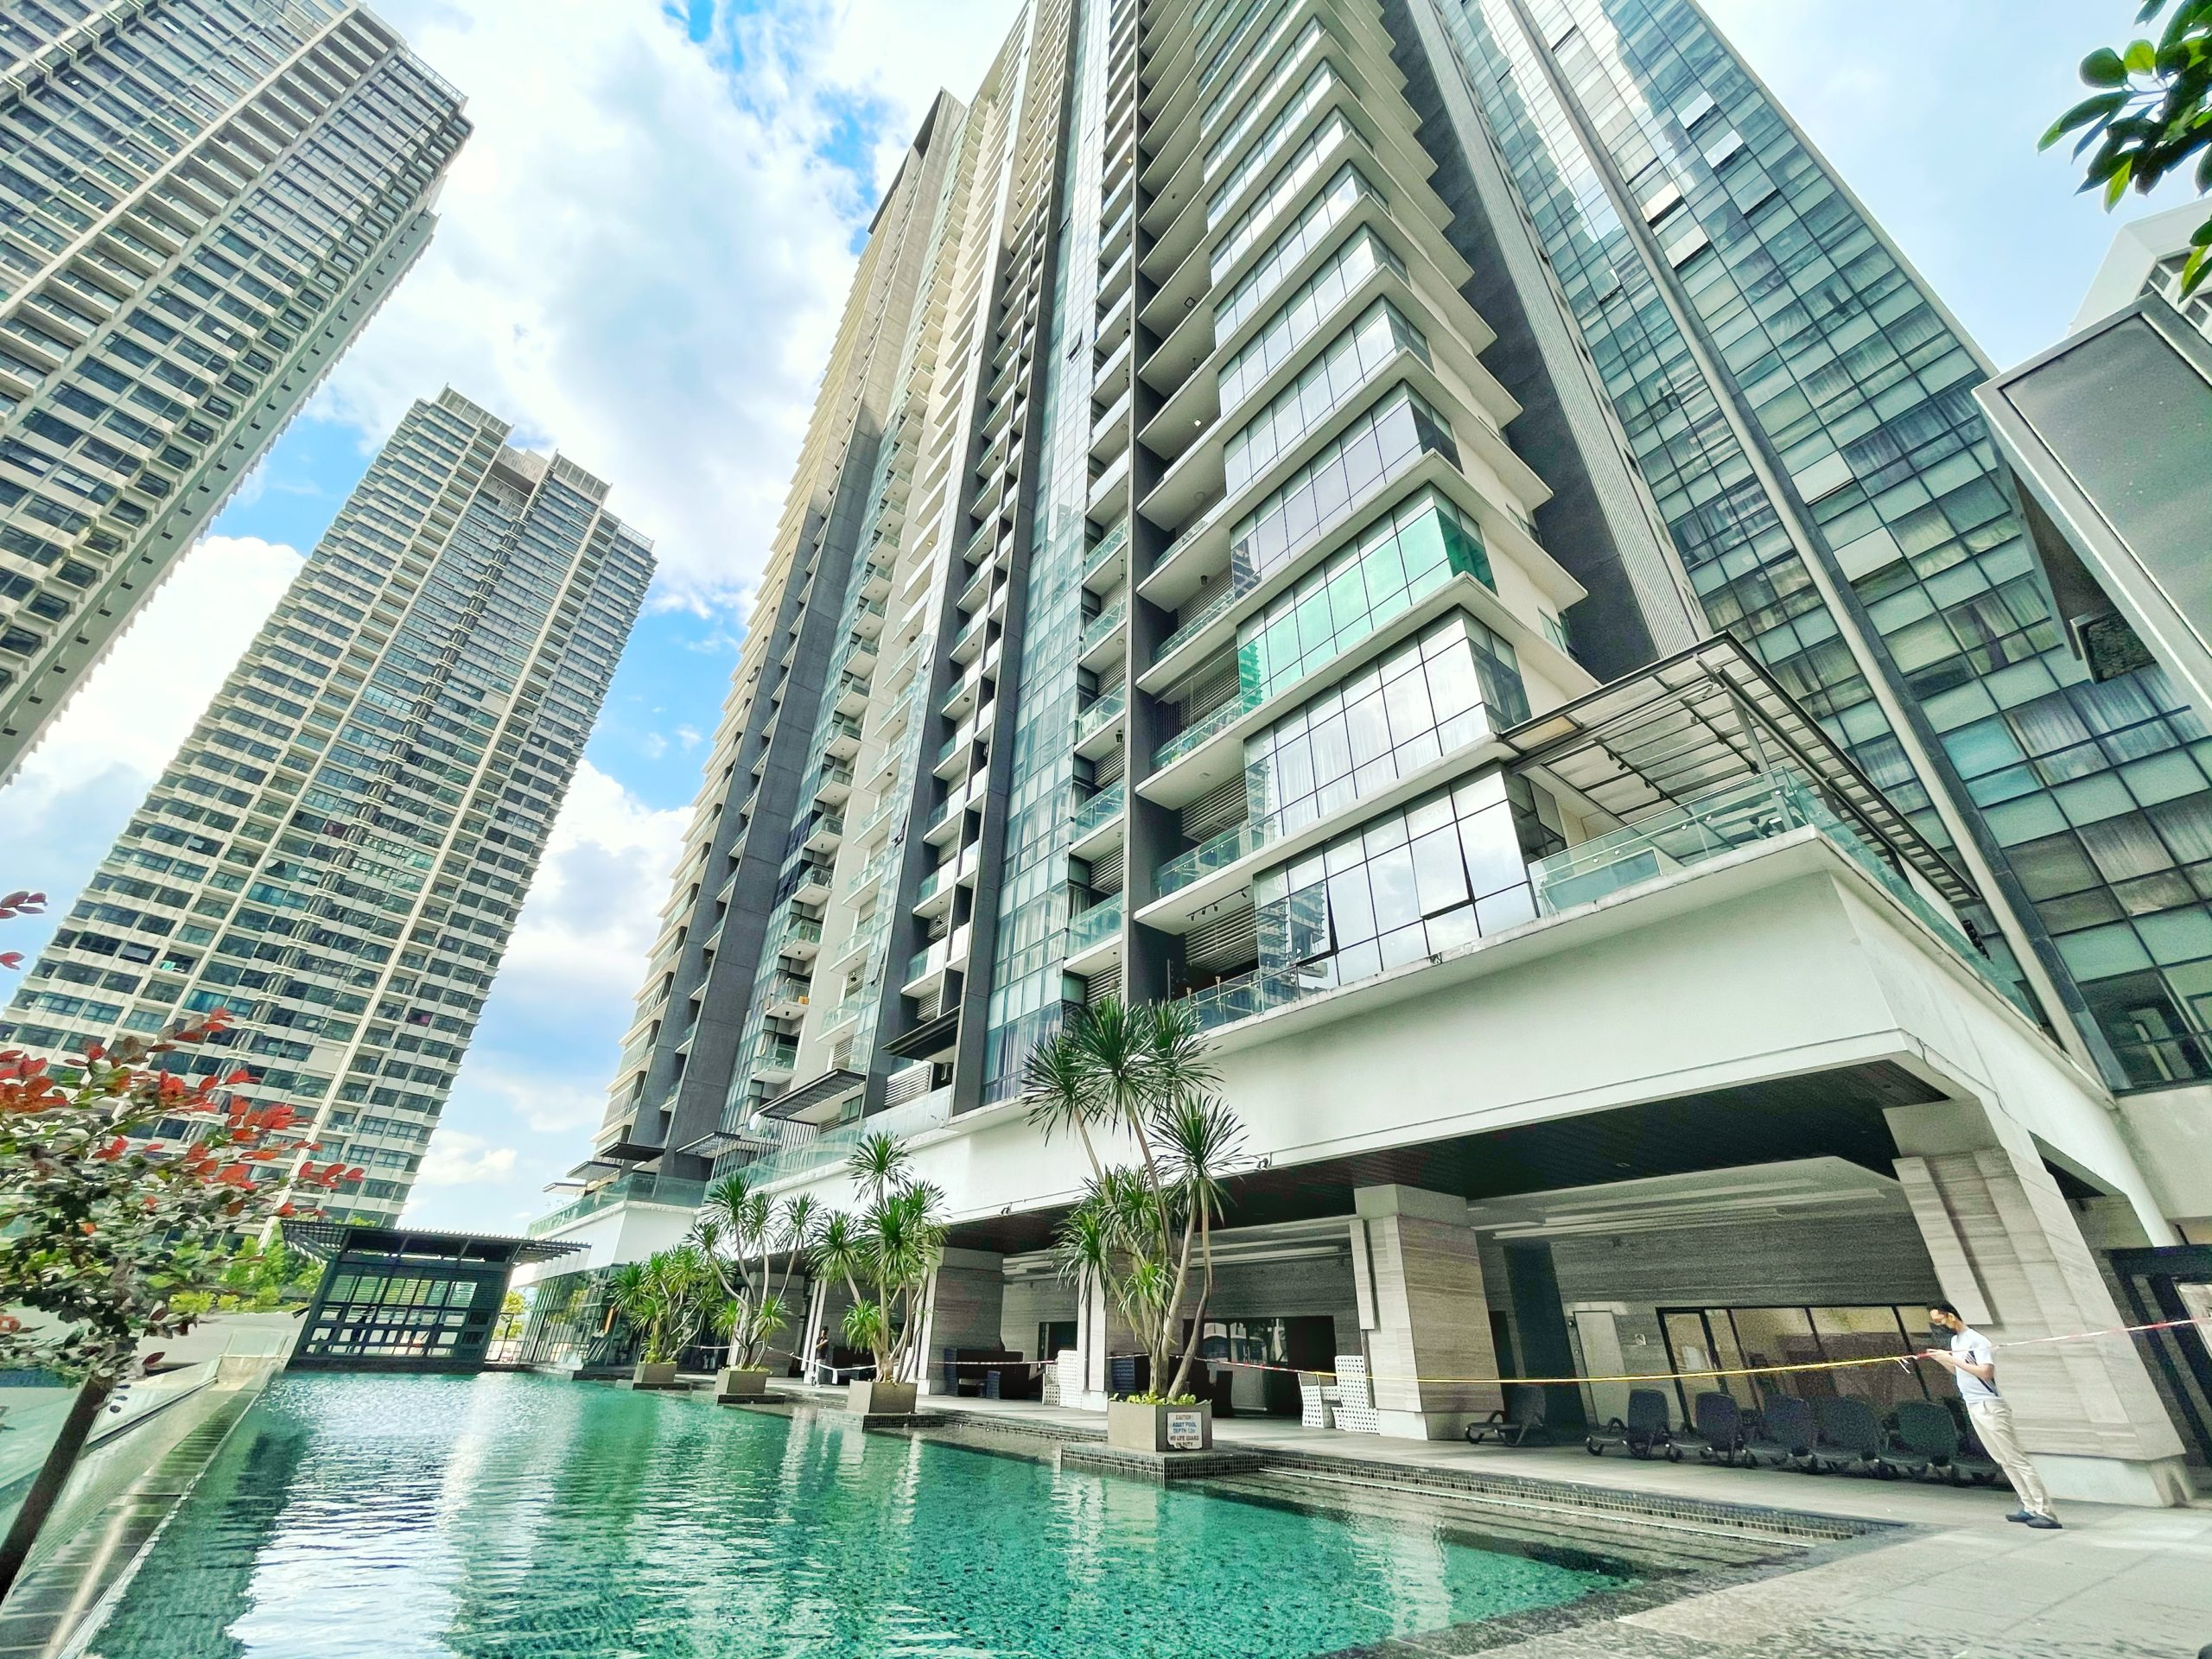 [FULLY FURNISHED] THE ELEMENTS SERVICE RESIDENCE JALAN AMPANG K.LUMPUR